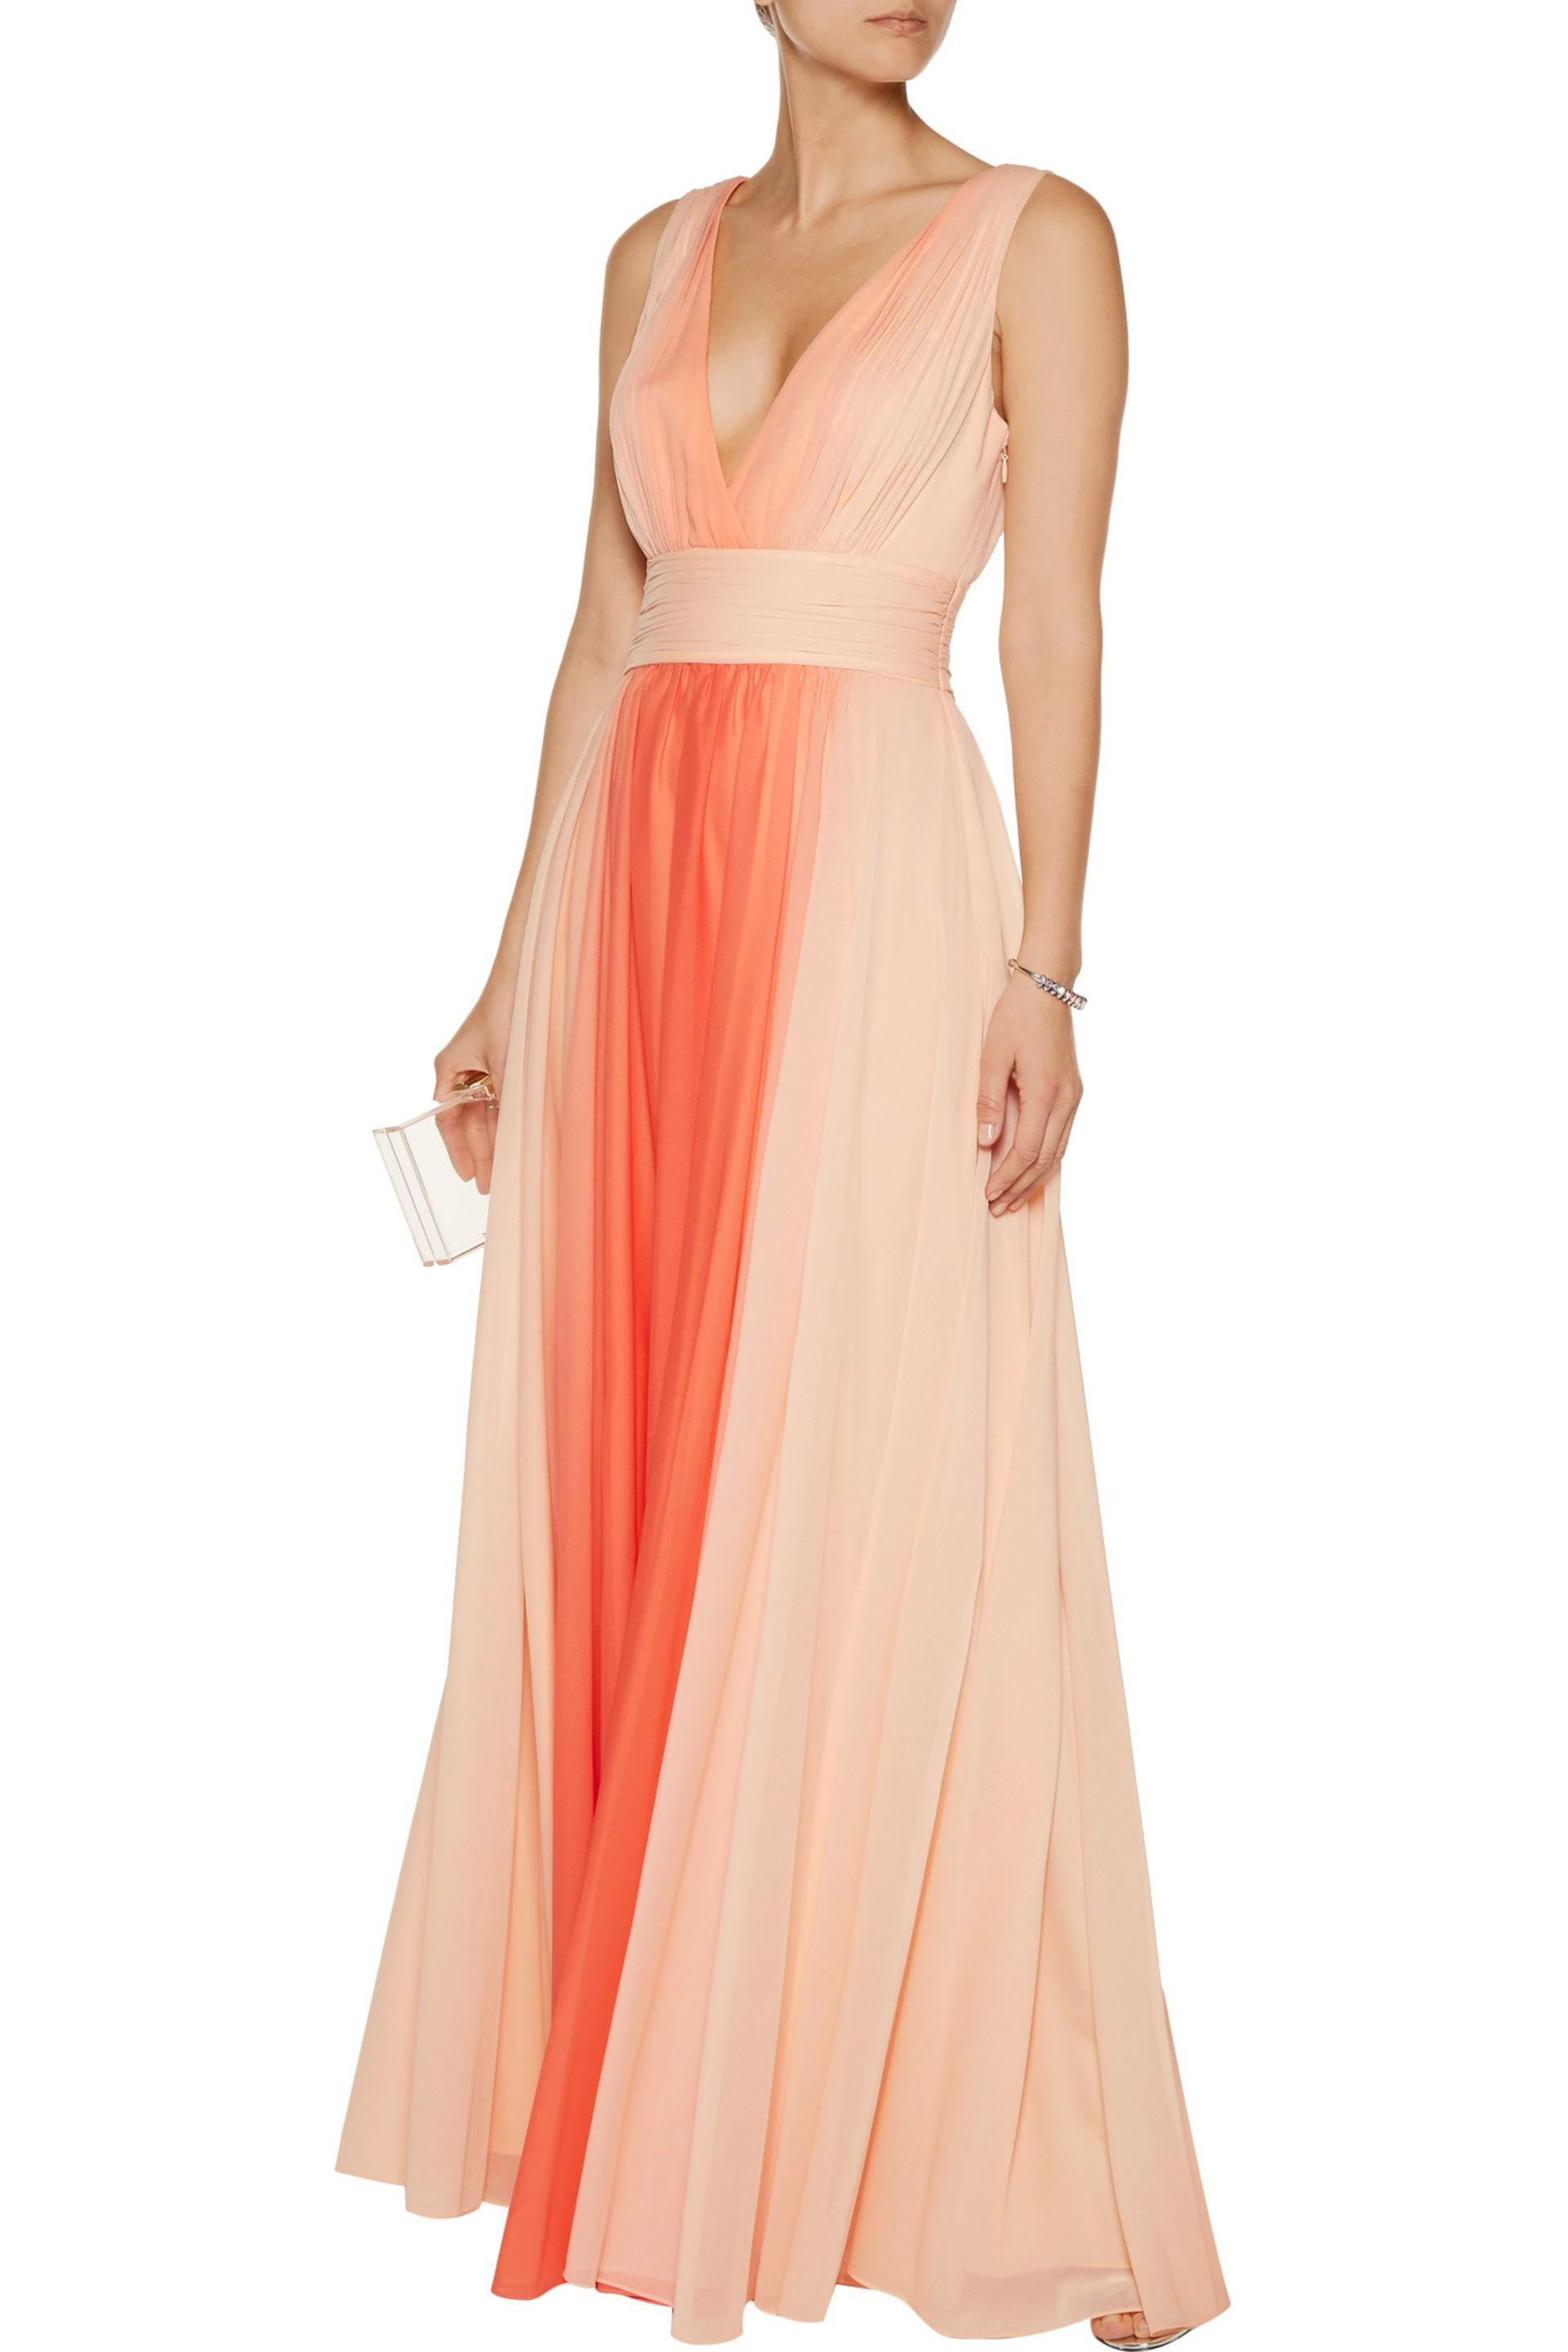 Halston Woman Ombr 233 Pleated Chiffon Gown Coral In Orange